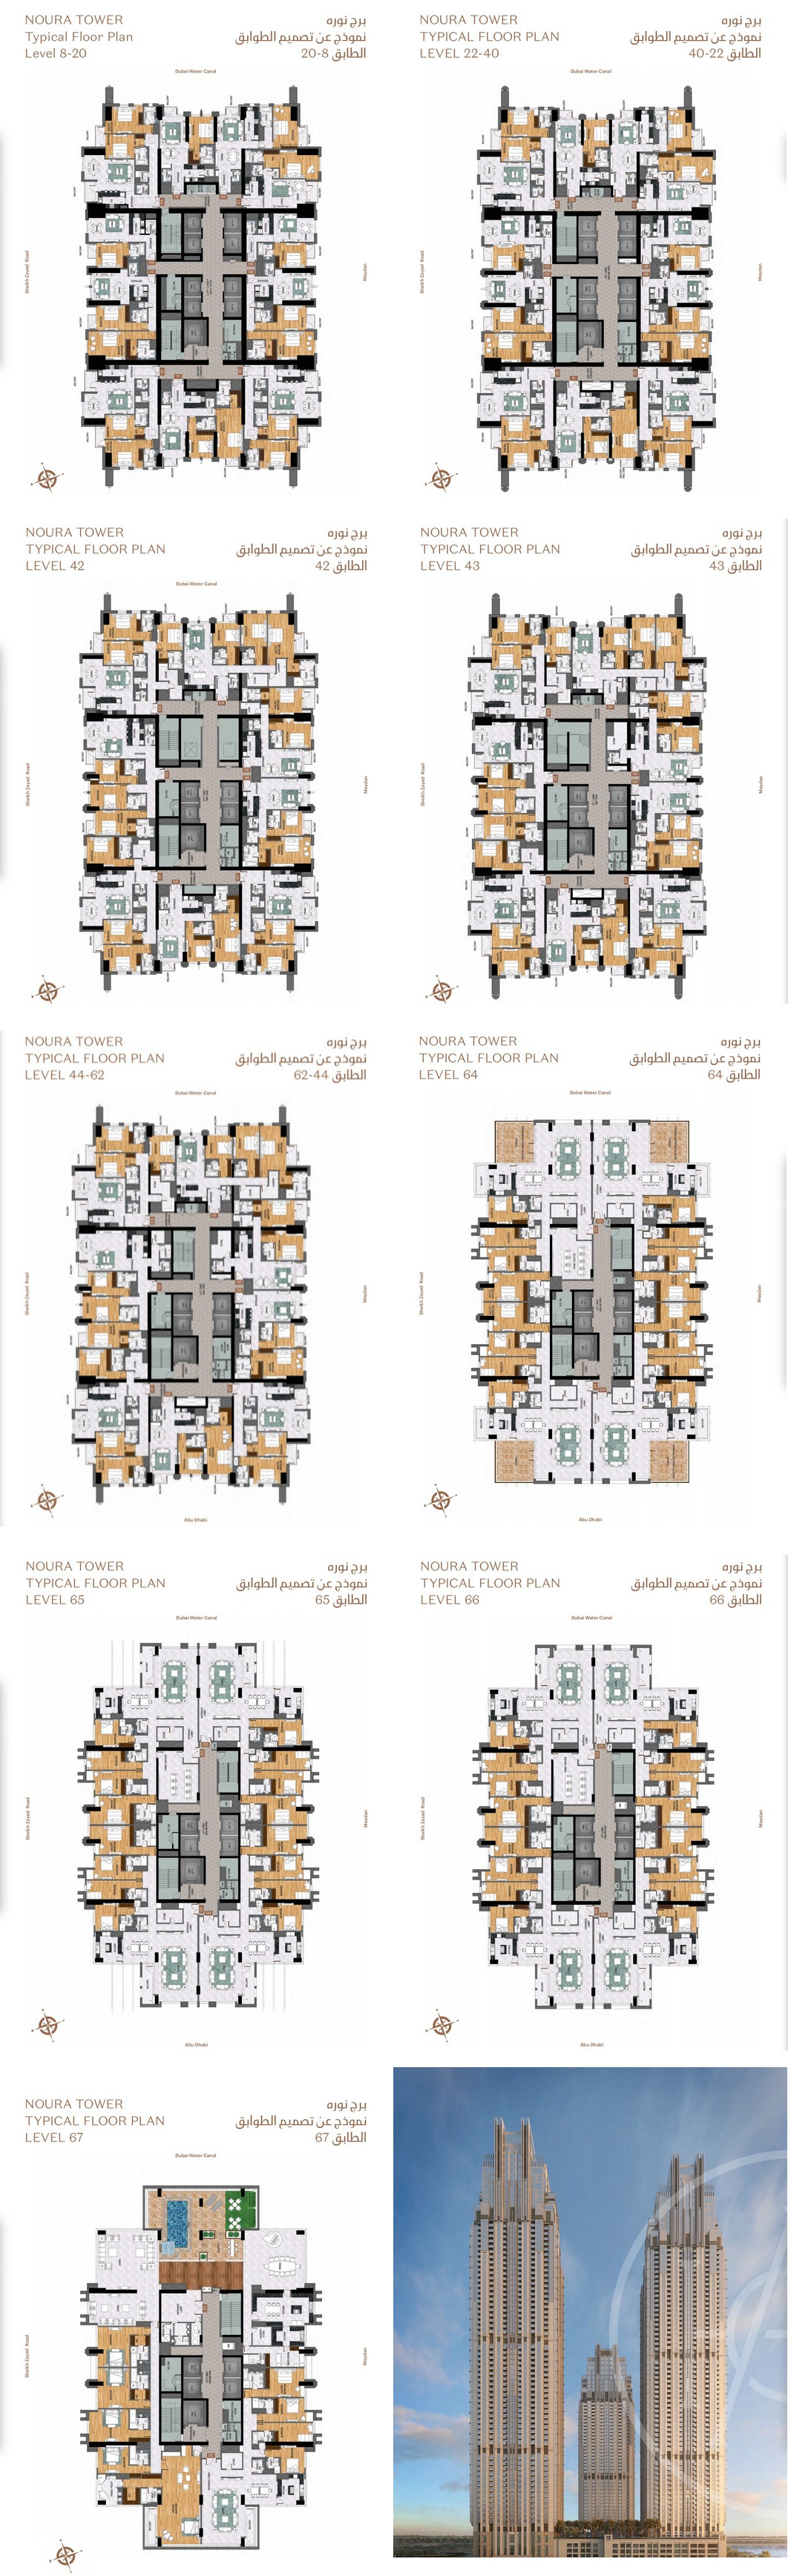 Noura Tower Al Habtoor City Dubai